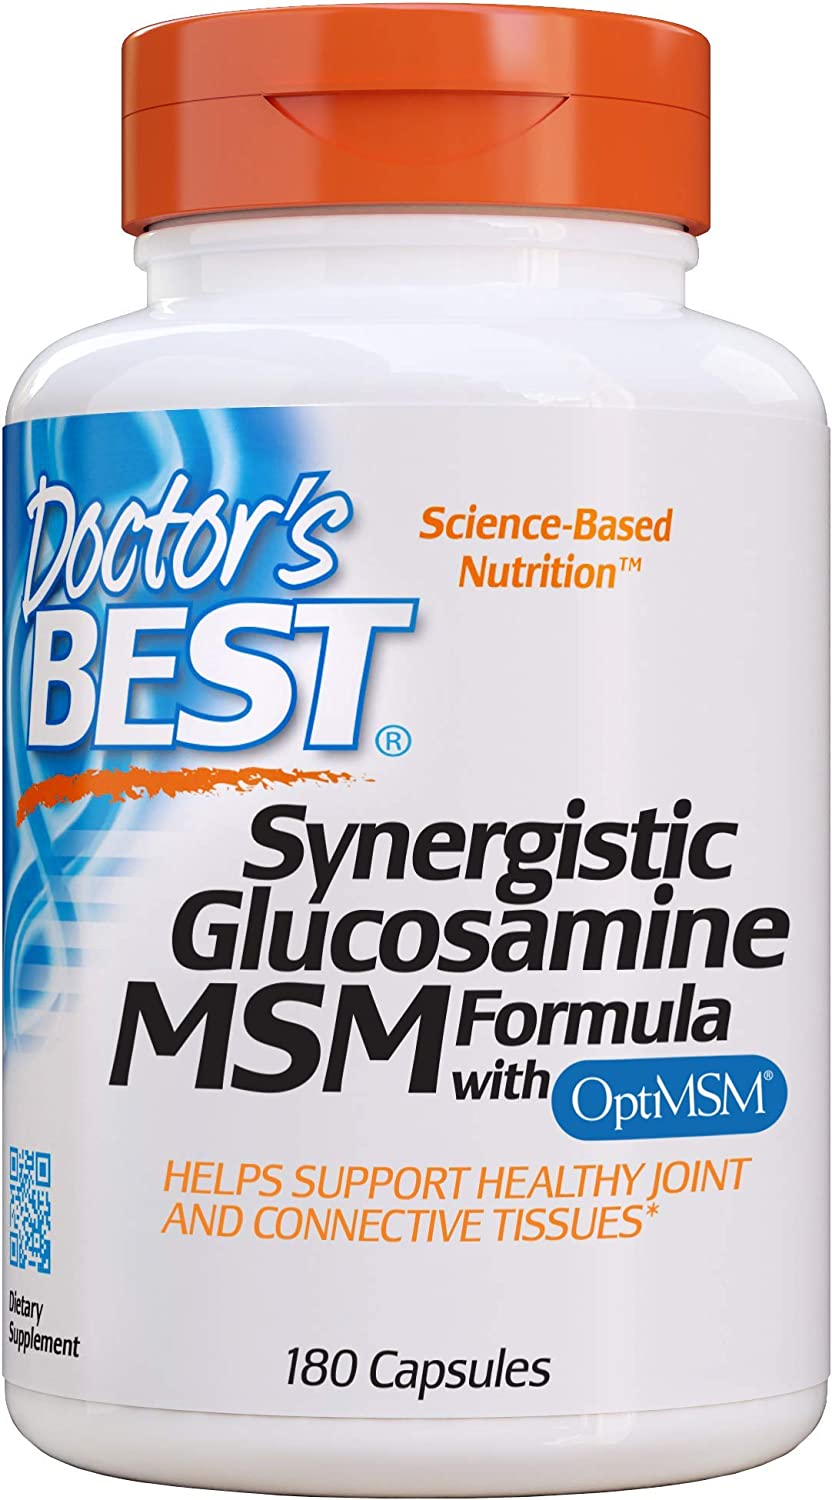 Doctor's Best Synergistic Glucosamine MSM with OptiMSM, Non-GMO, Gluten Free, Soy Free, Joint Support, 180 Caps